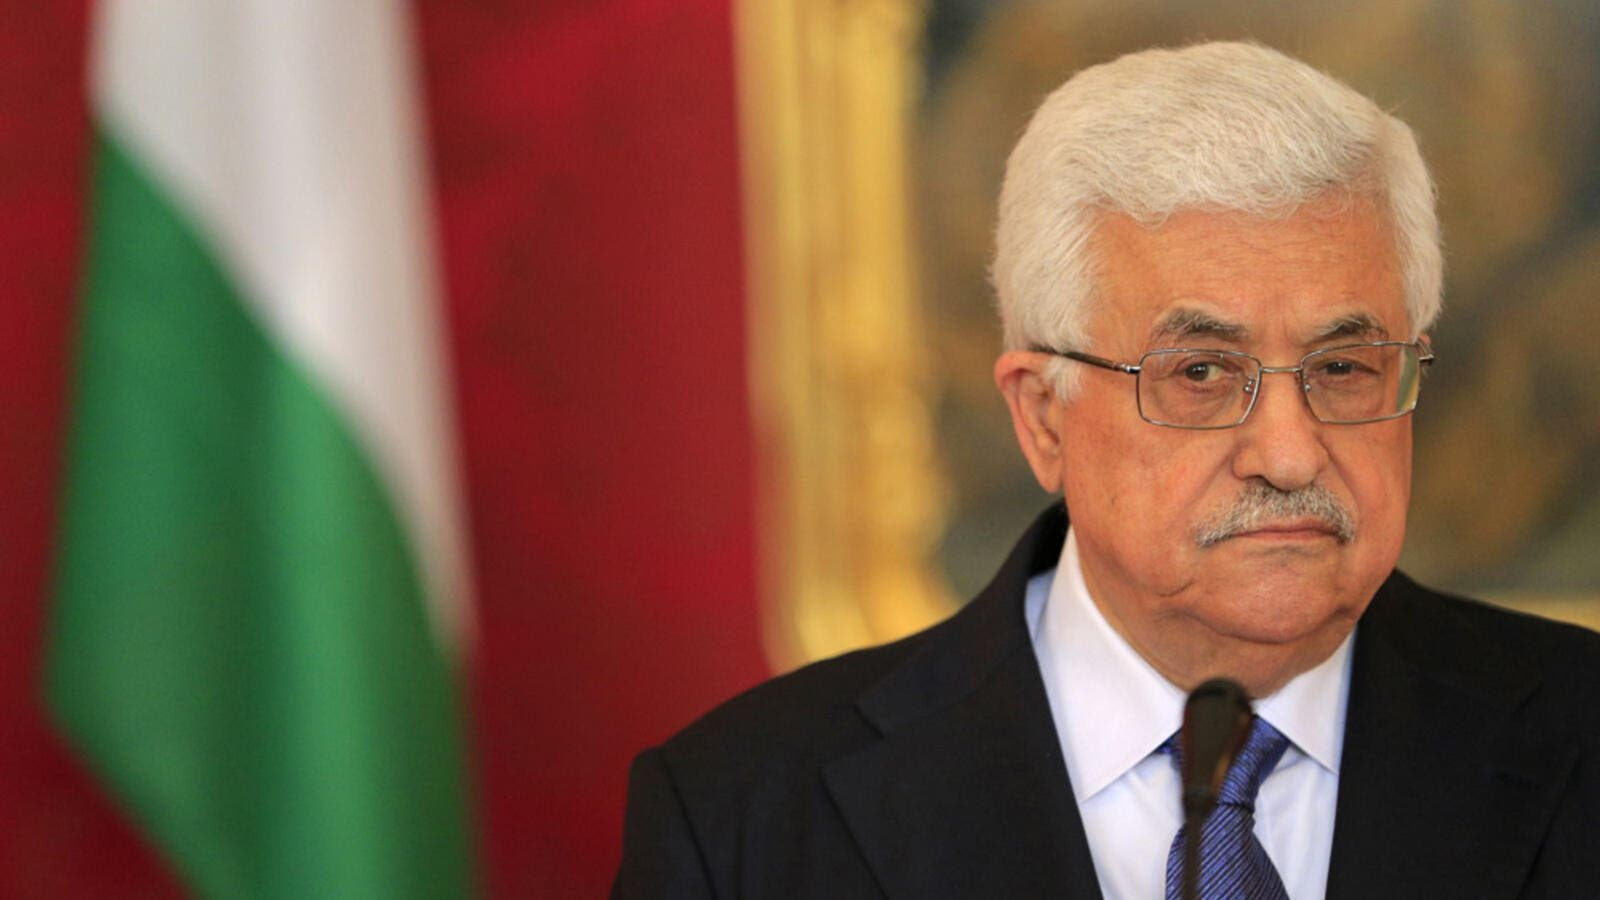 The Palestinian Authority is appealing the case on the basis that it could never have been brought to trial in a foreign country if the US recognized Palestine as a sovereign state. (AFP/File)